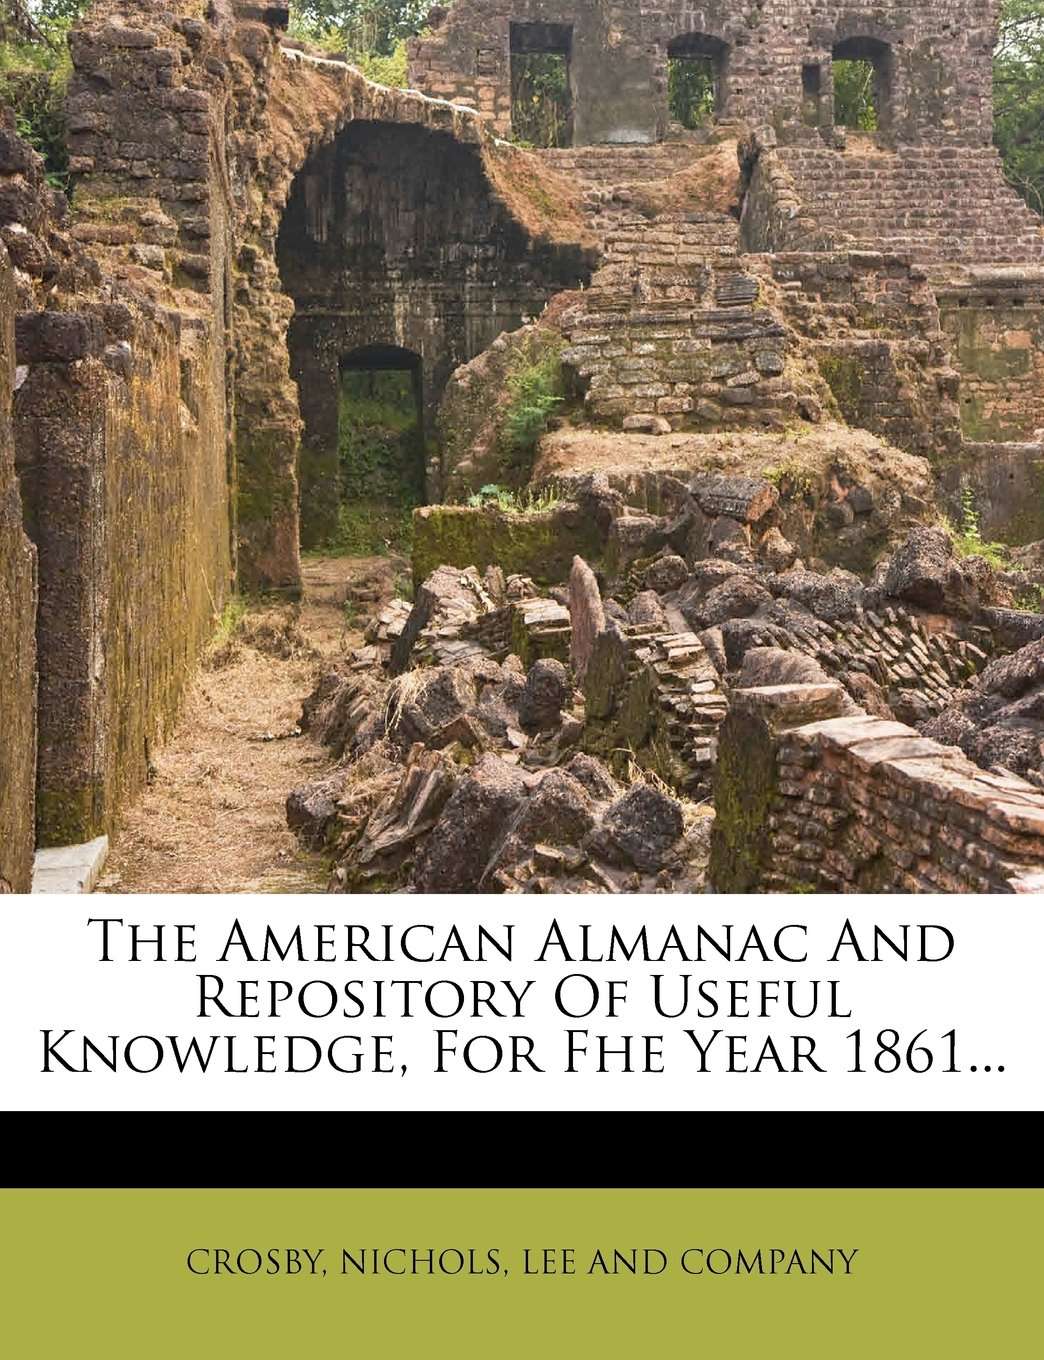 Download The American Almanac And Repository Of Useful Knowledge, For Fhe Year 1861... PDF